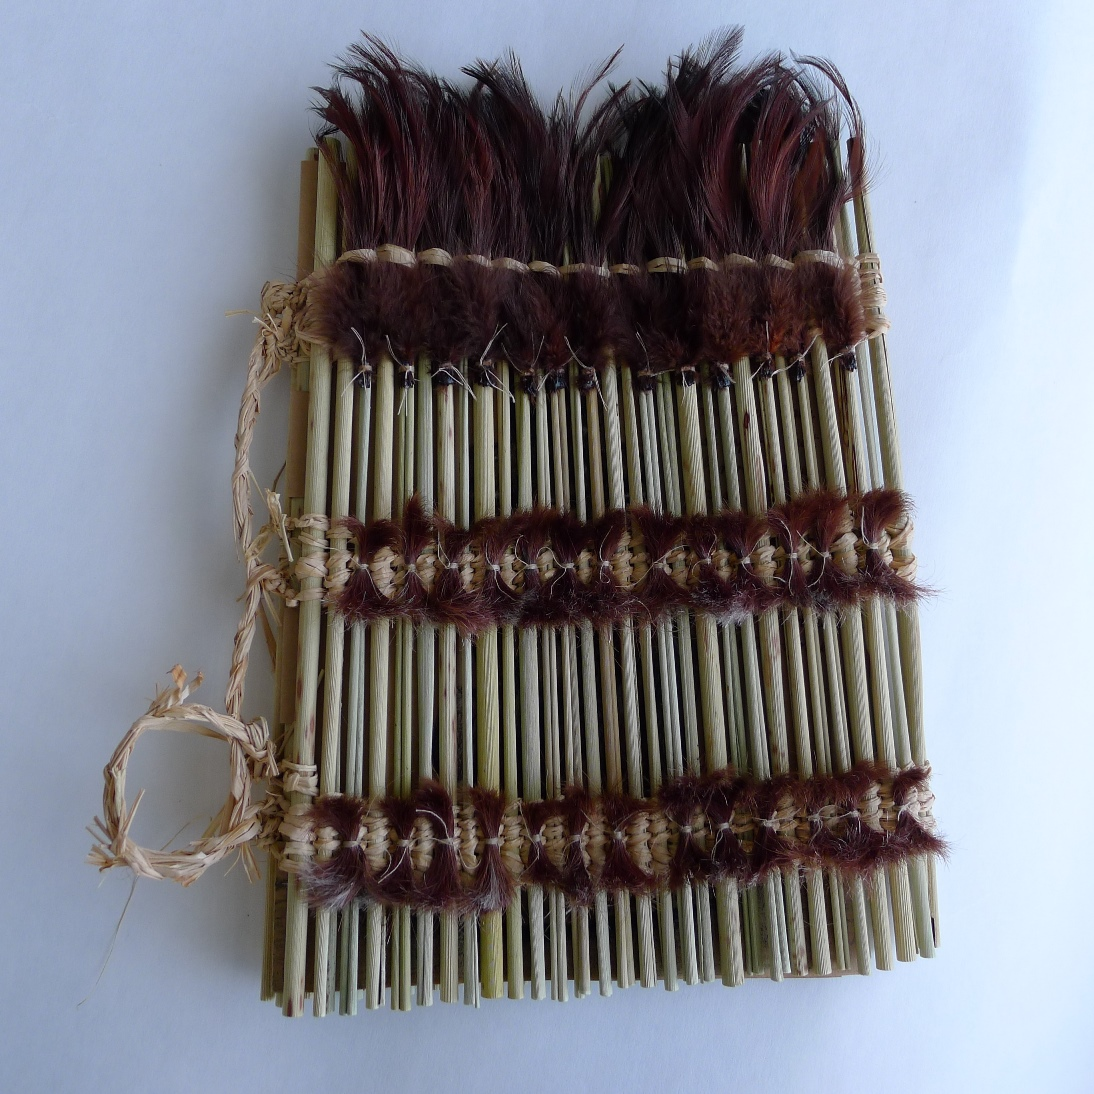 skewer spine (rolled flax rod)